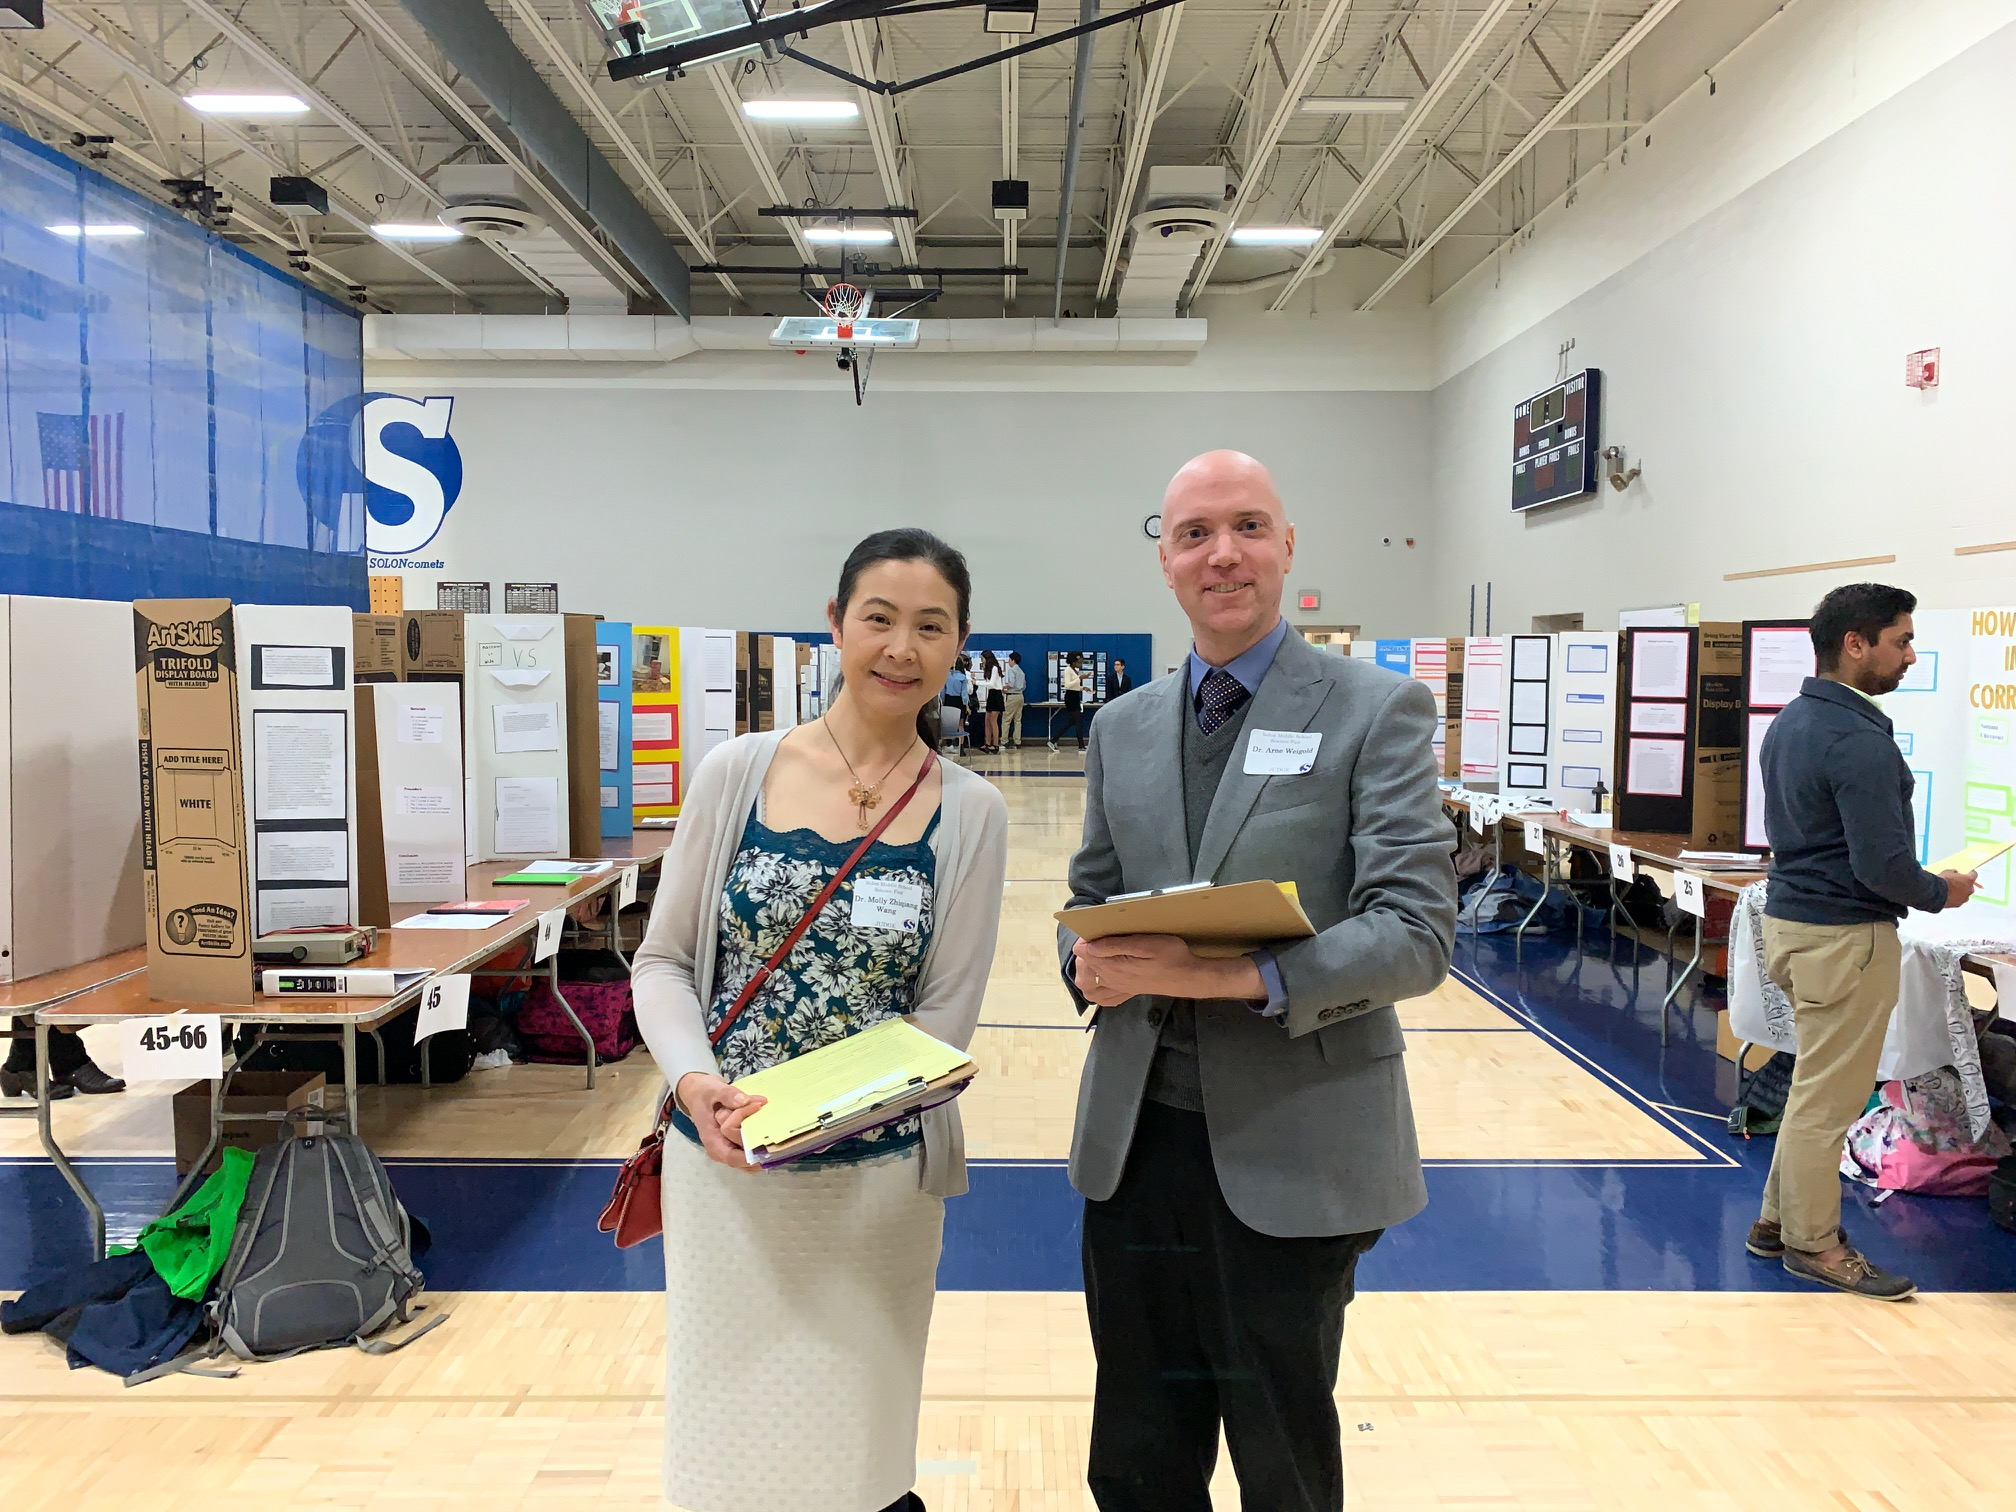 Drs. Wang and Weigold judging a local student event